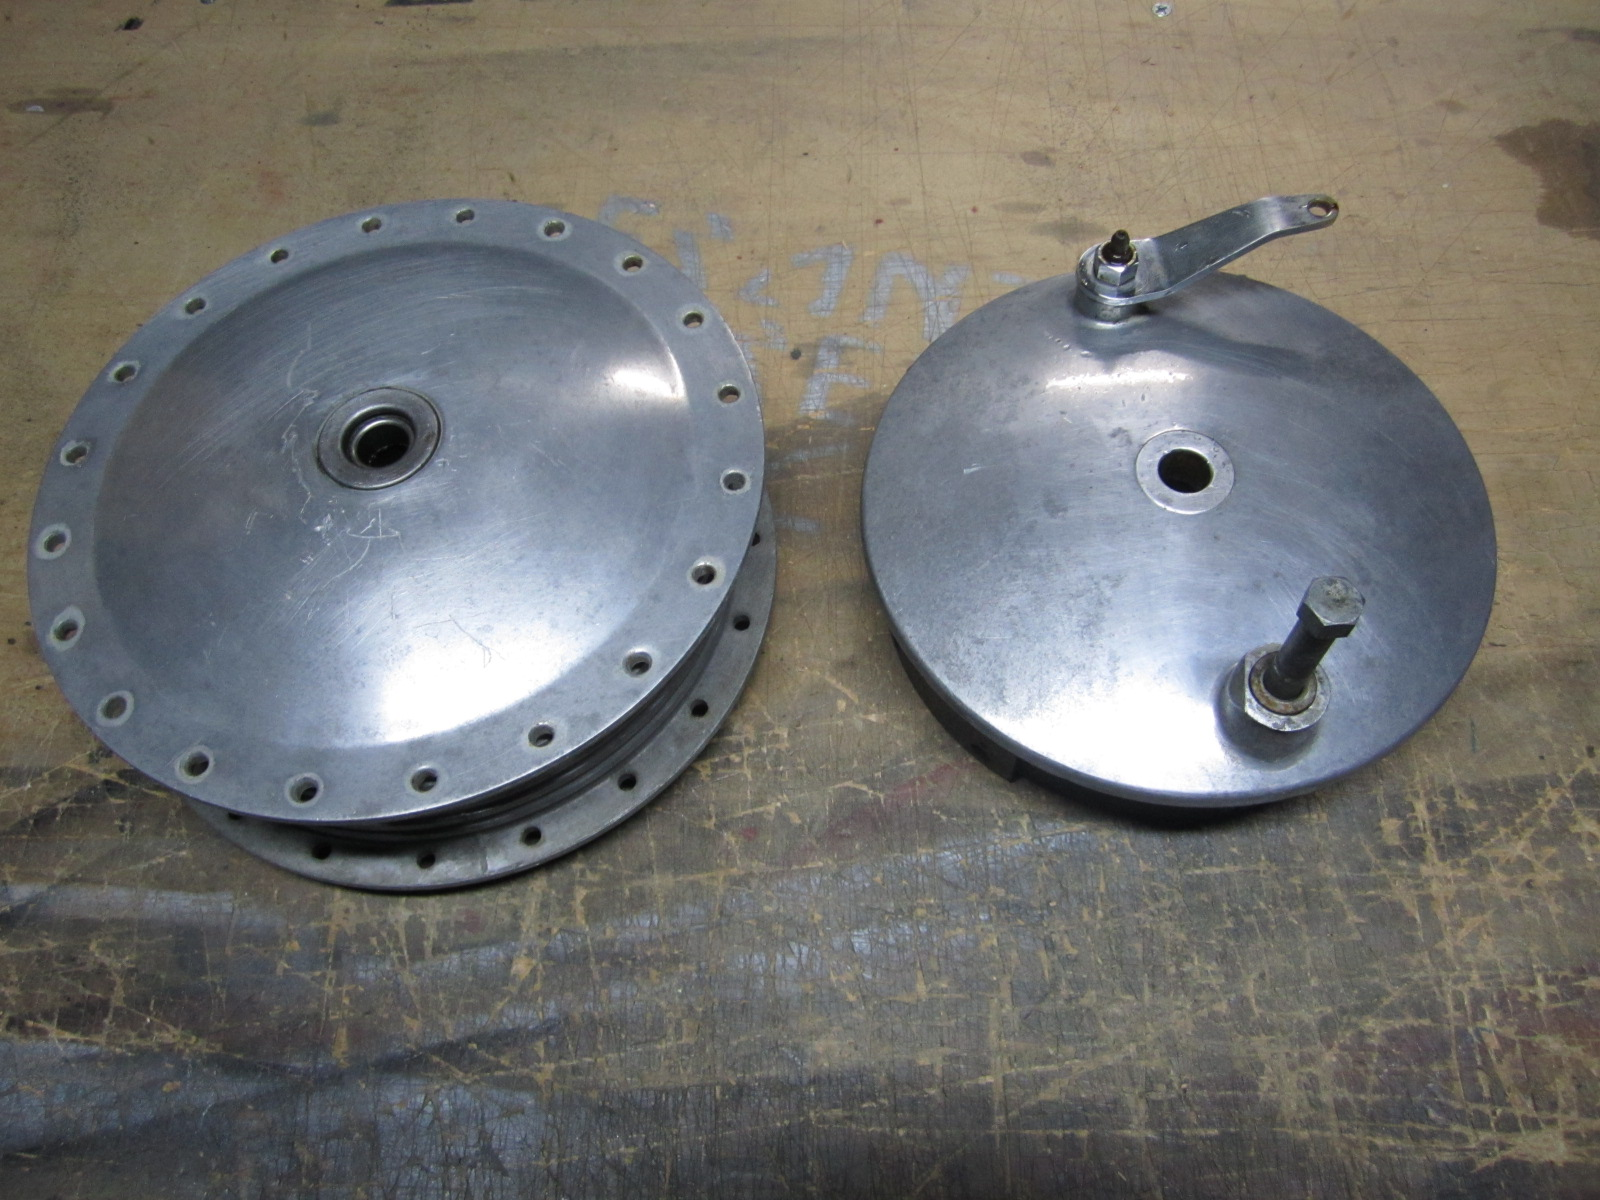 FRONT ST CYCLE: SOLD! Ironhead Sportster Front Drum Brake 64-72